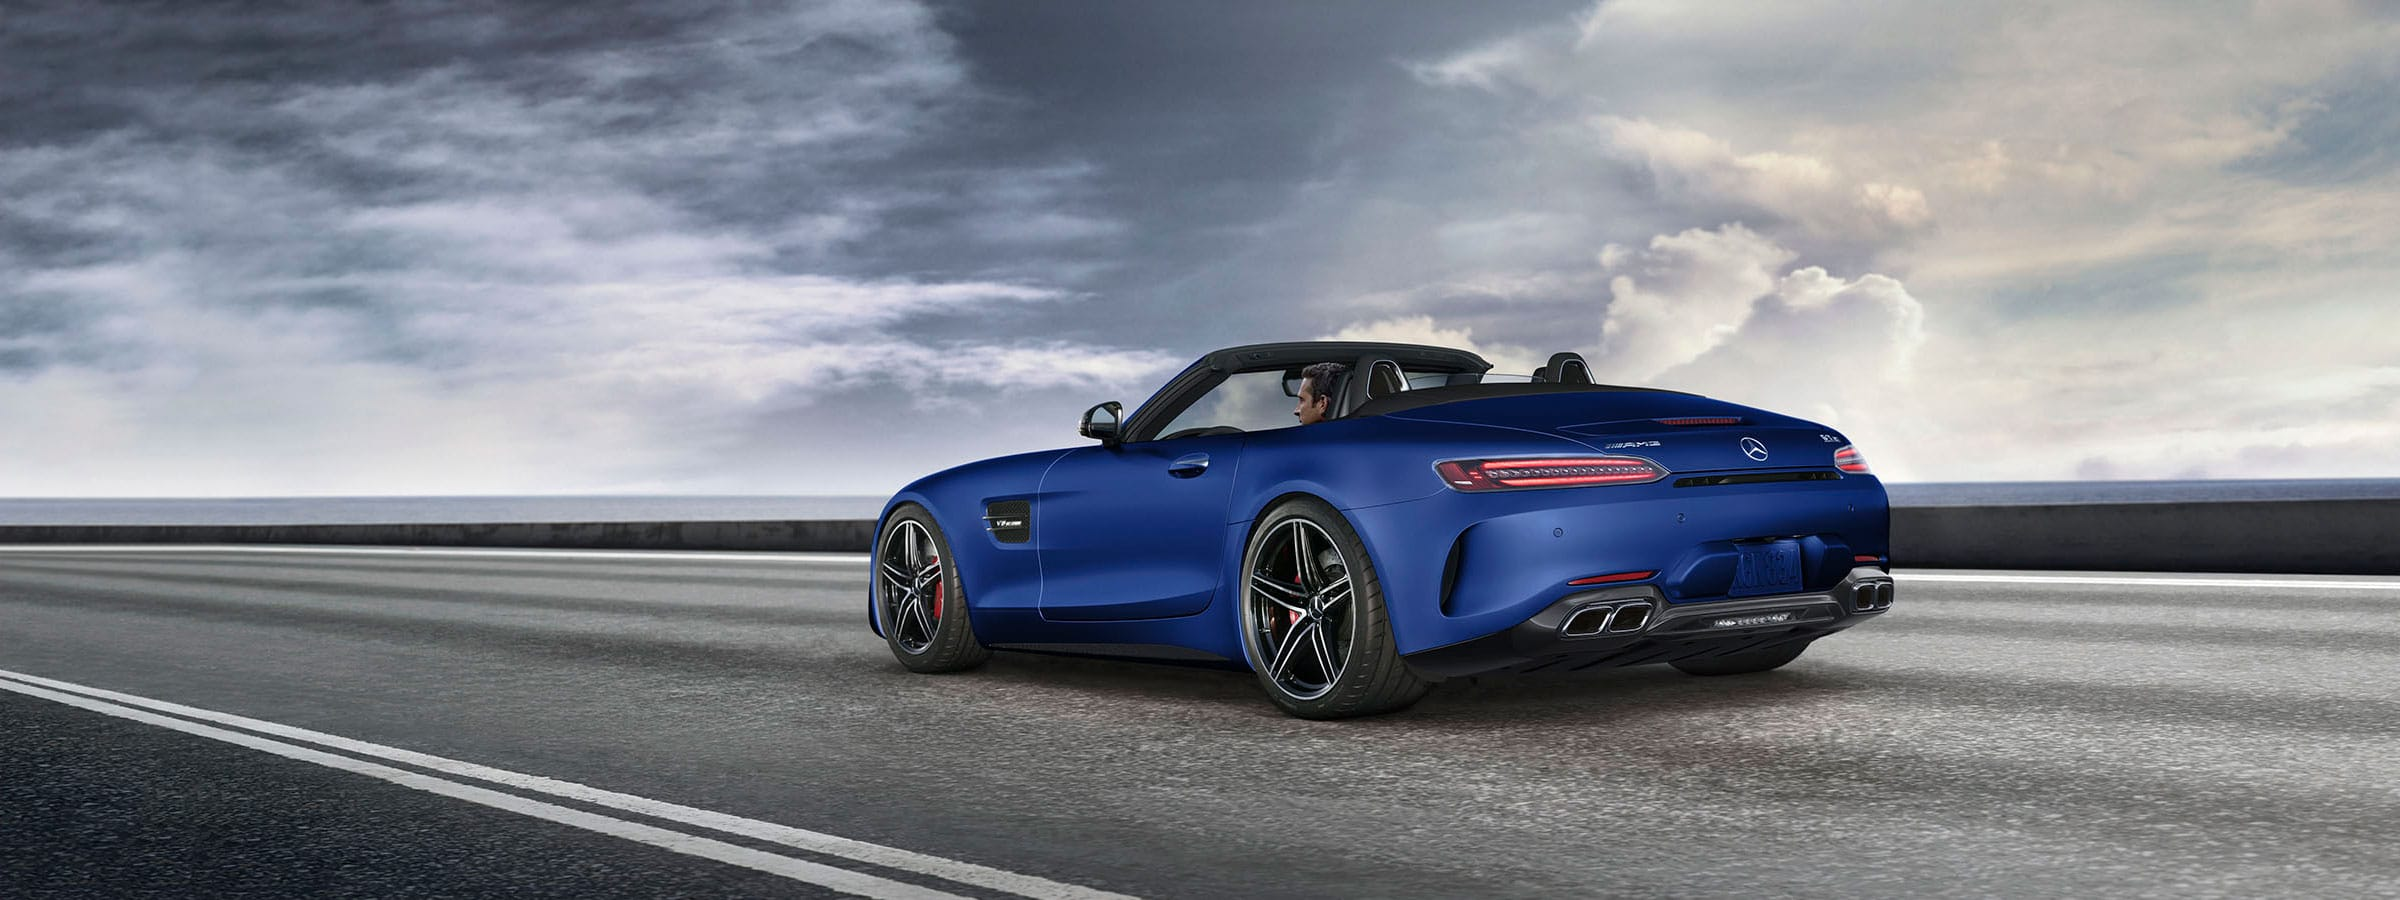 Cars That Start With C >> Mercedes Amg Gt Roadster High Performance Sports Car Mercedes Benz